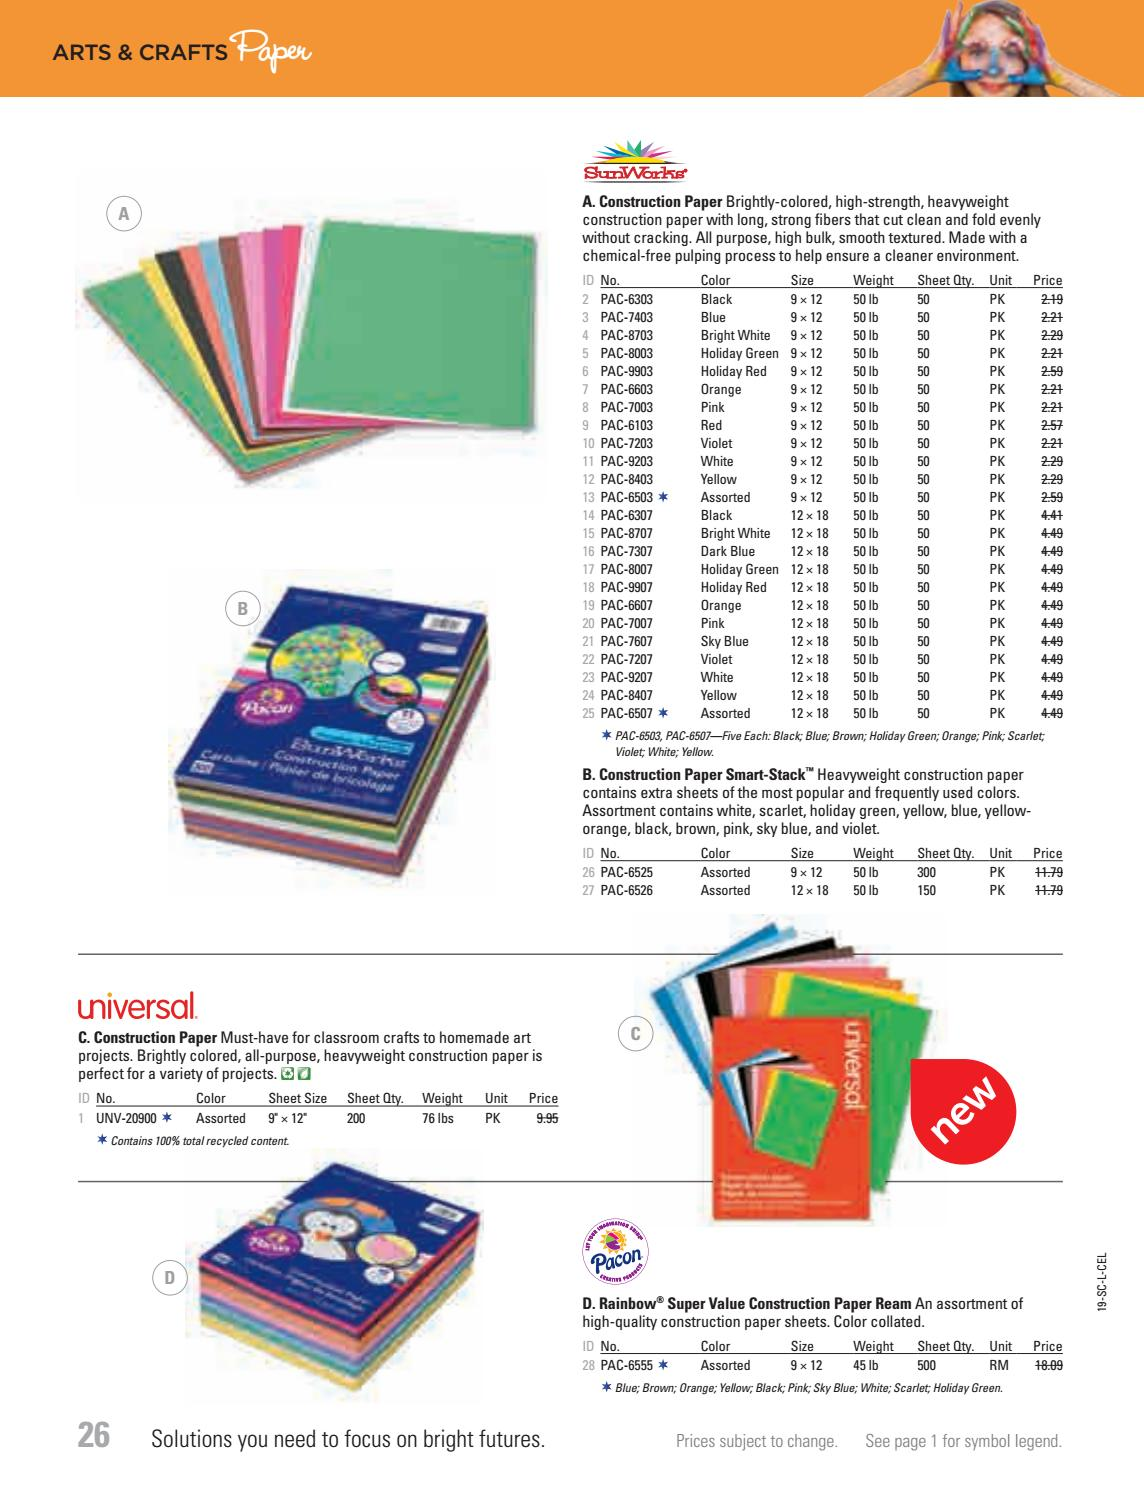 PACON 9x12 Rainbow Super Value Construction Paper Ream Pack of 2, Multi Assorted